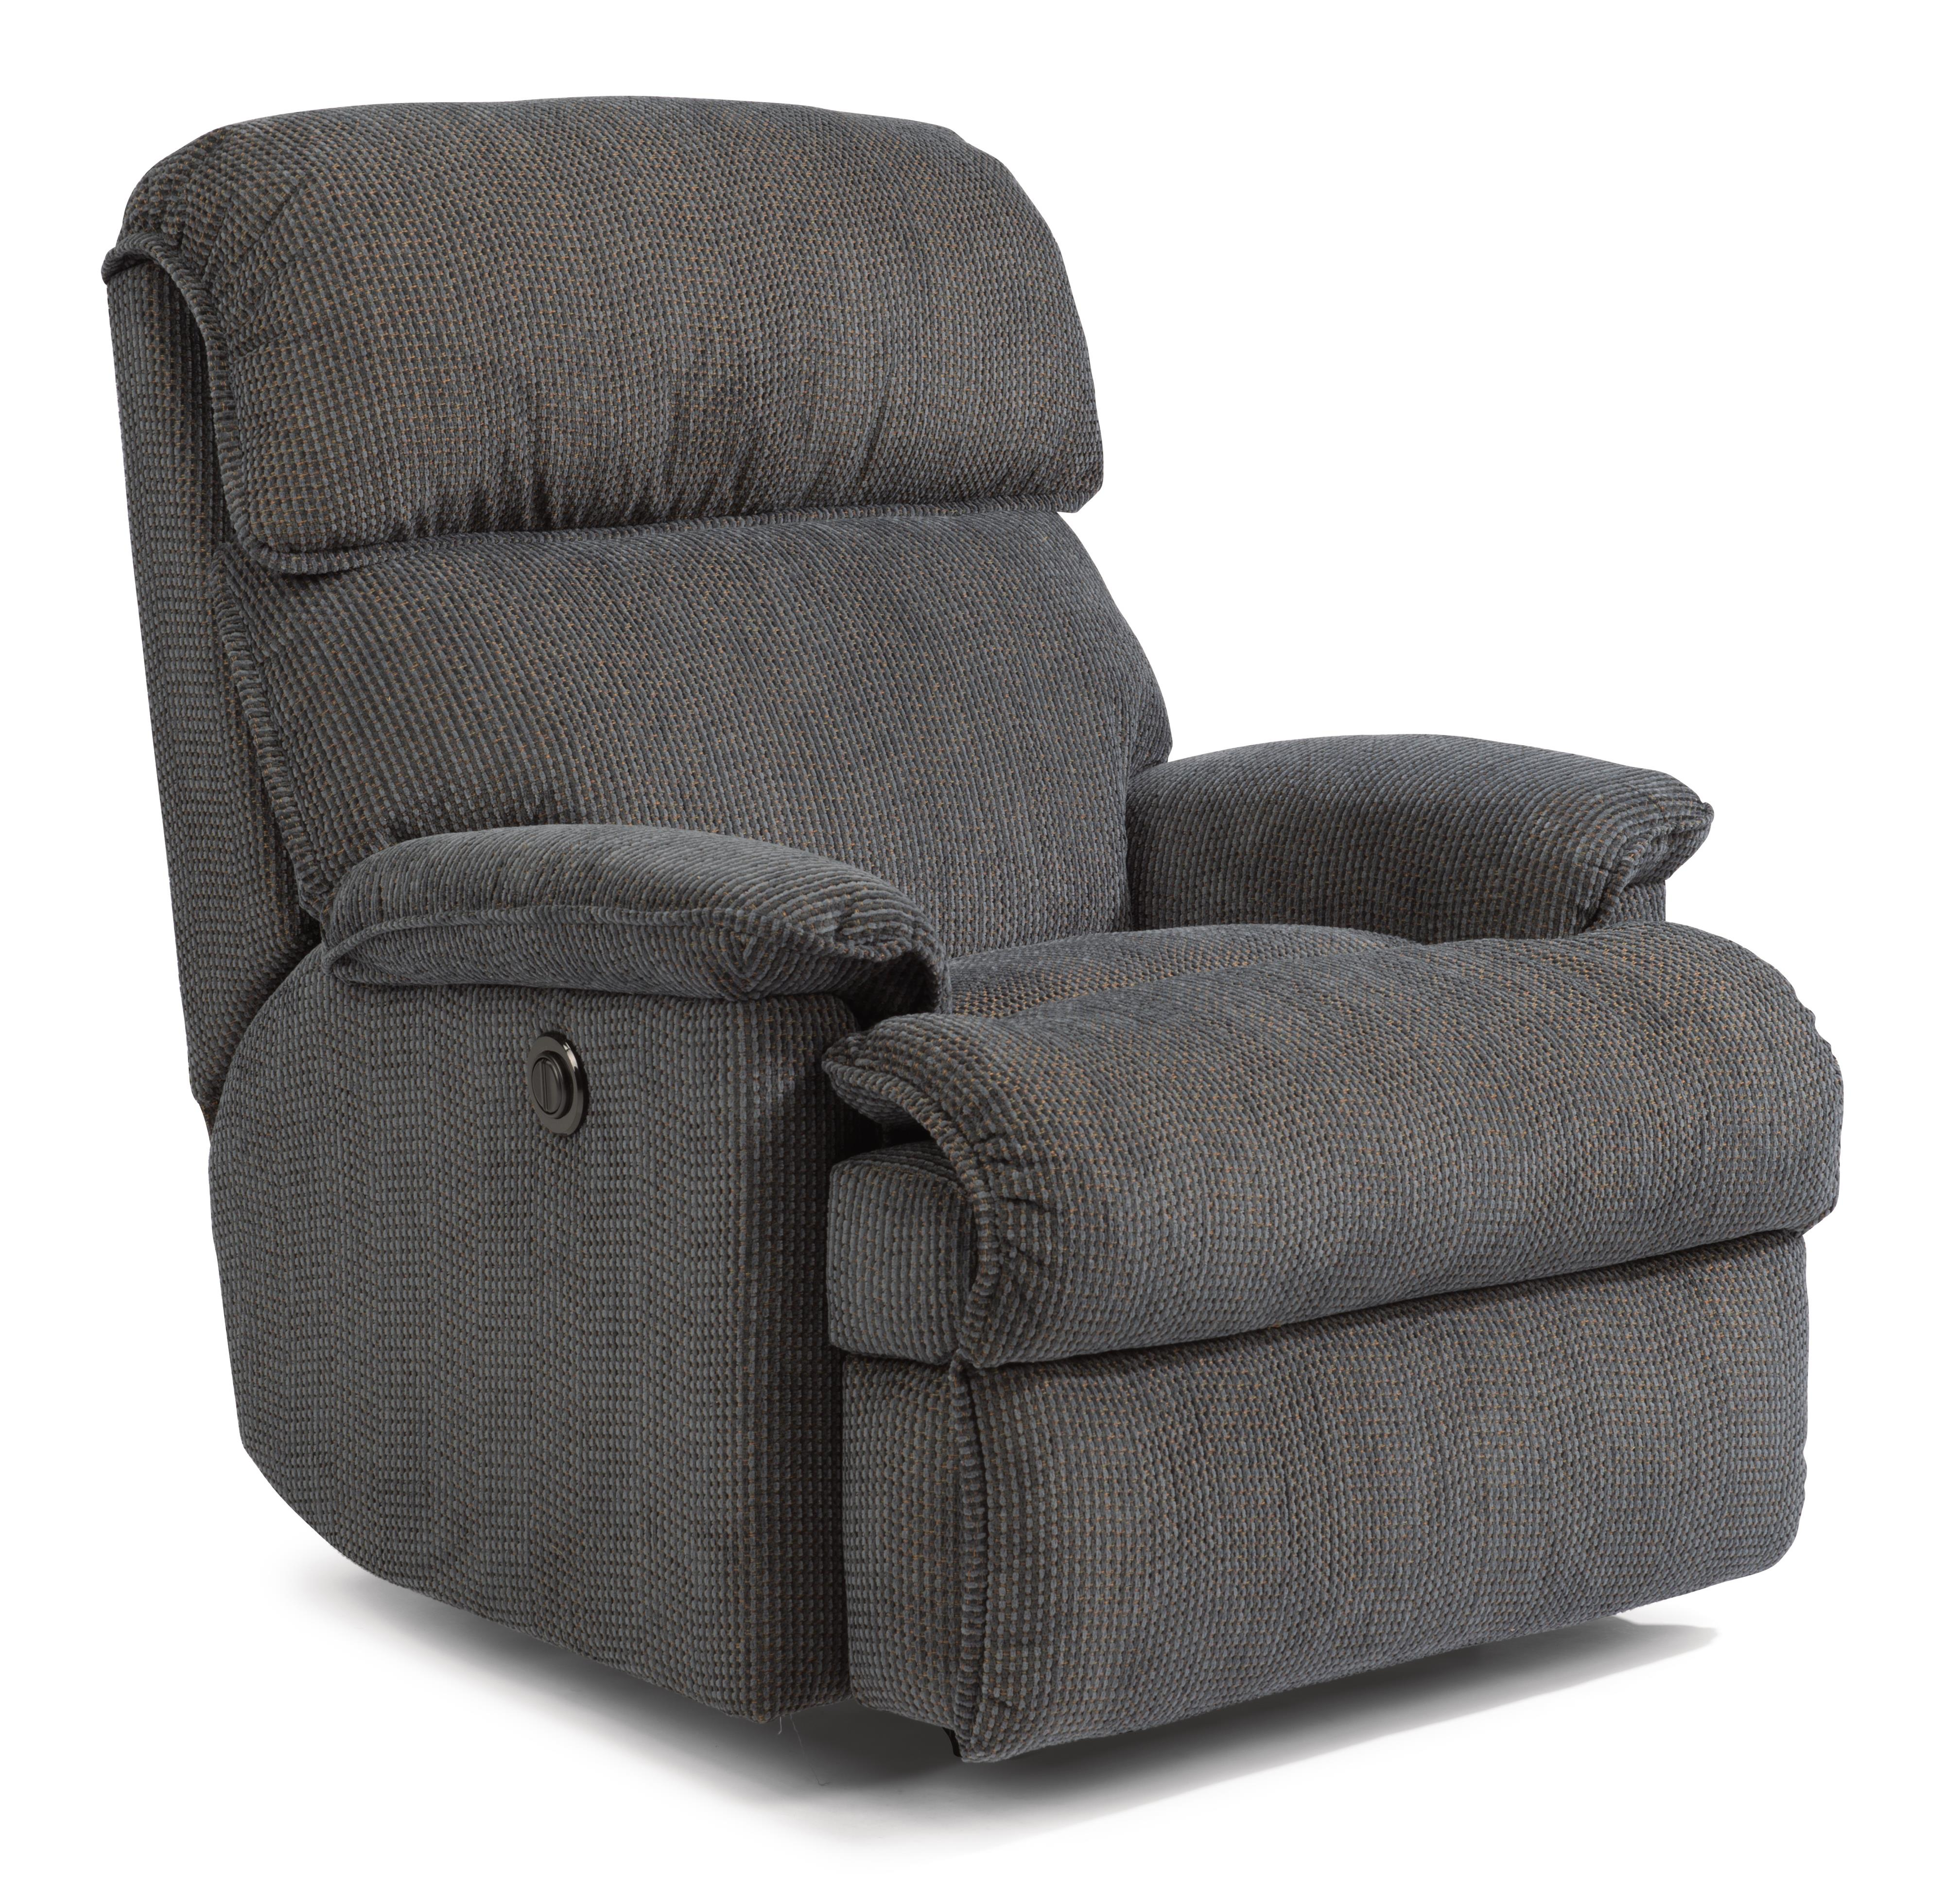 Accents Geneva Power Rocker Recliner by Flexsteel at Mueller Furniture